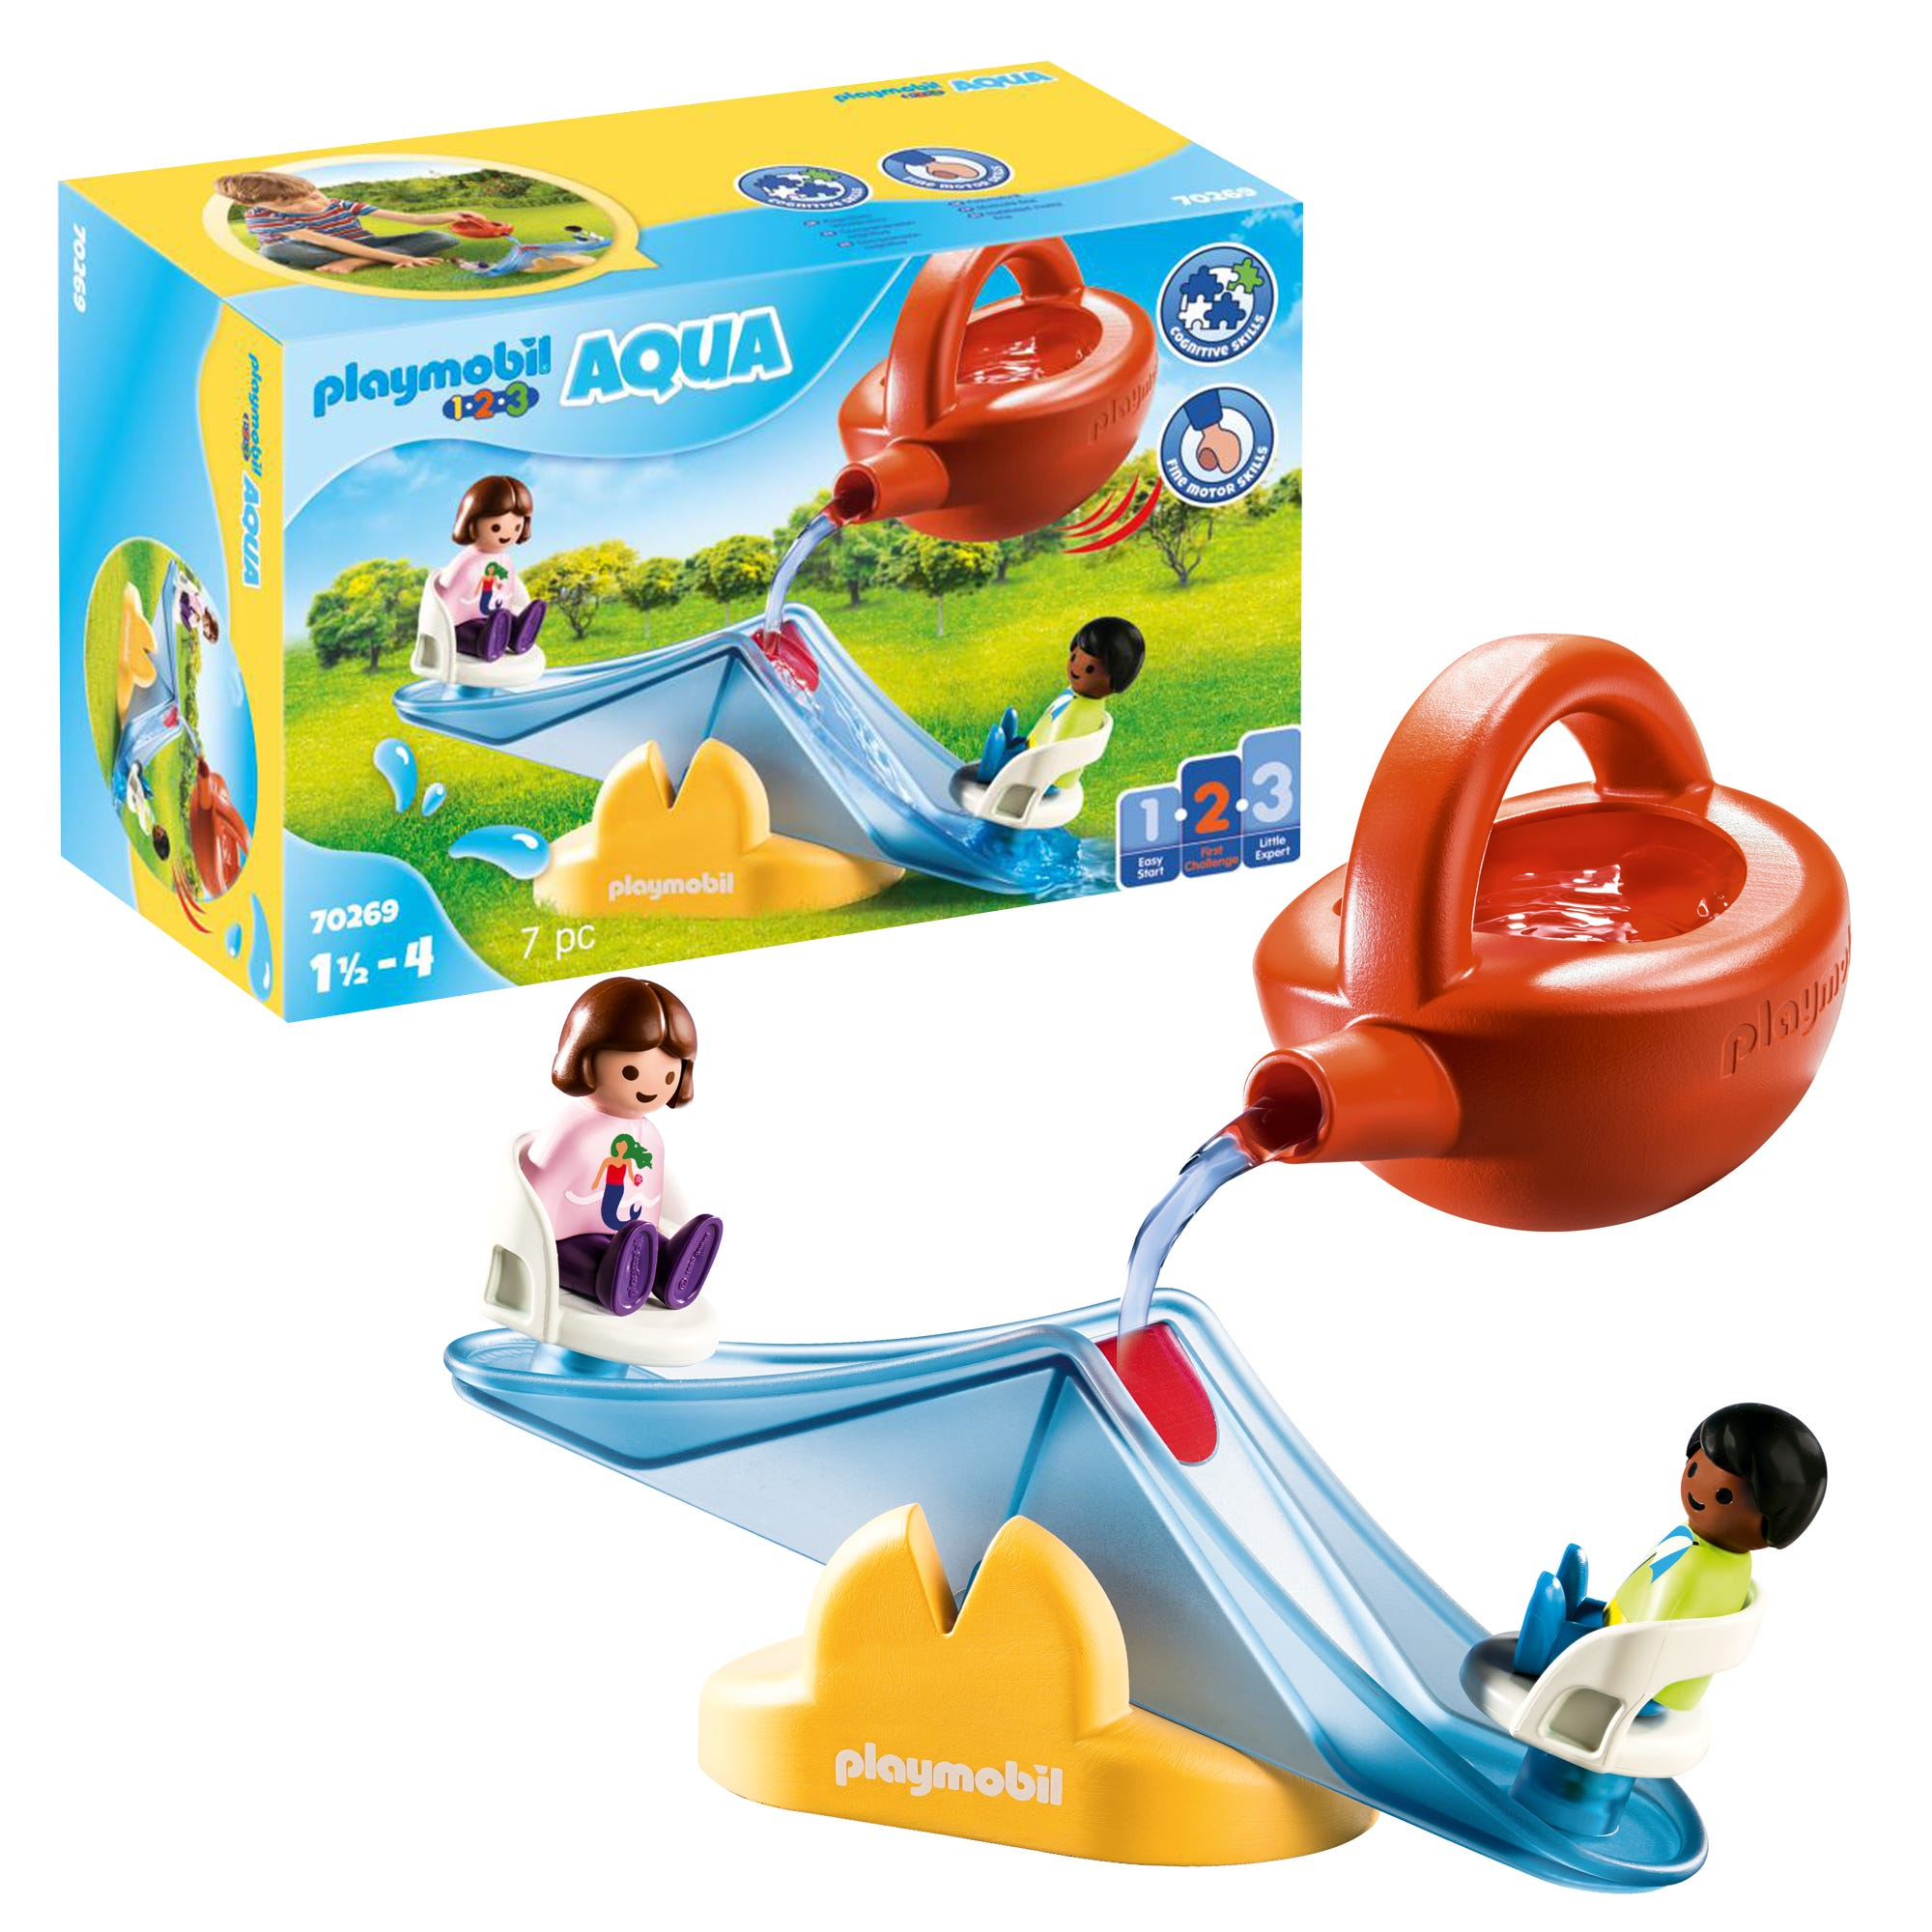 Playmobil 1.2.3 70269 AQUA Water Seesaw With Watering Can For 18+ Months